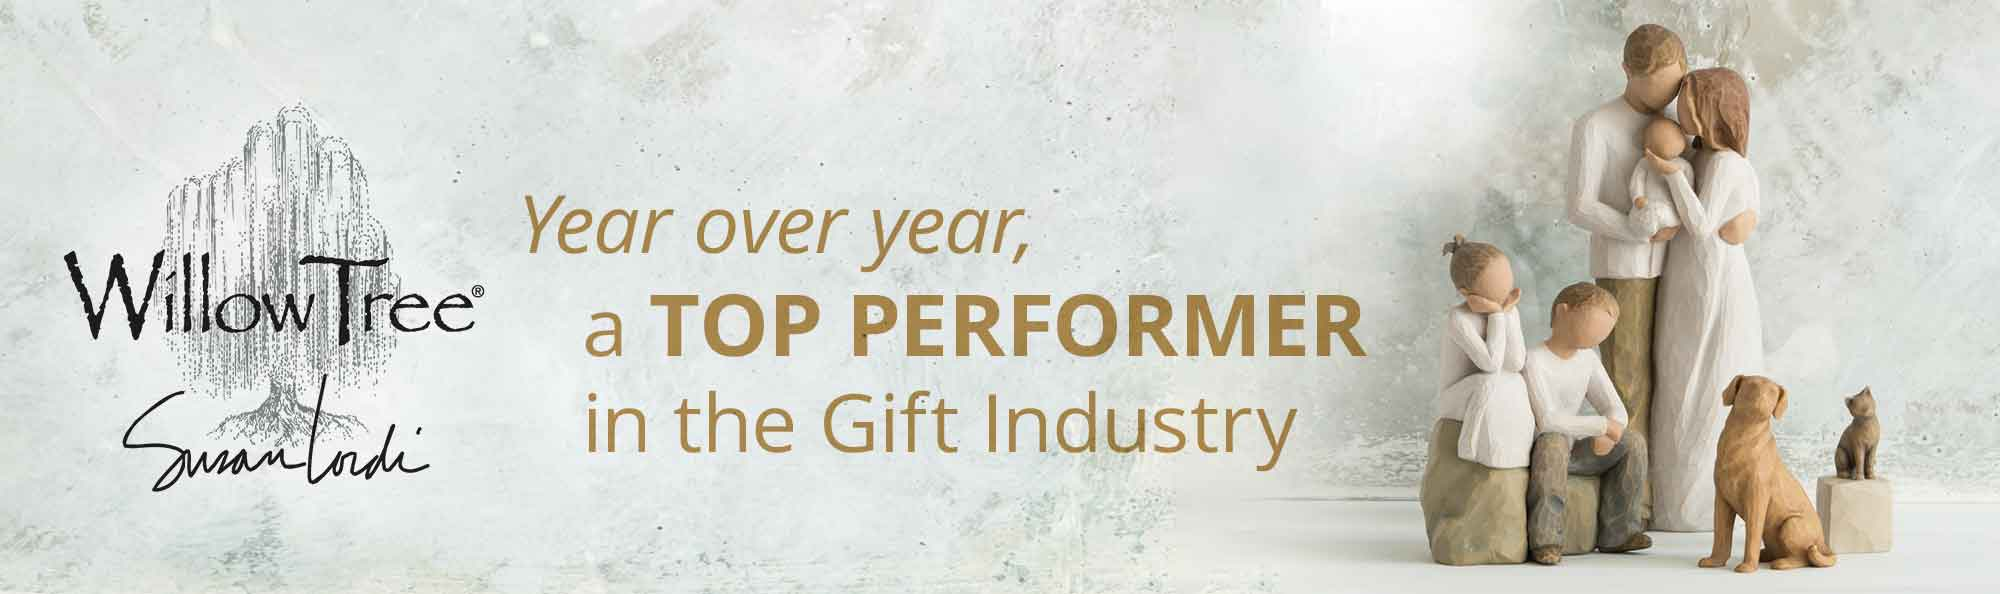 Willow Tree by Susan Lordi. Year over year a top performer in the gift industry